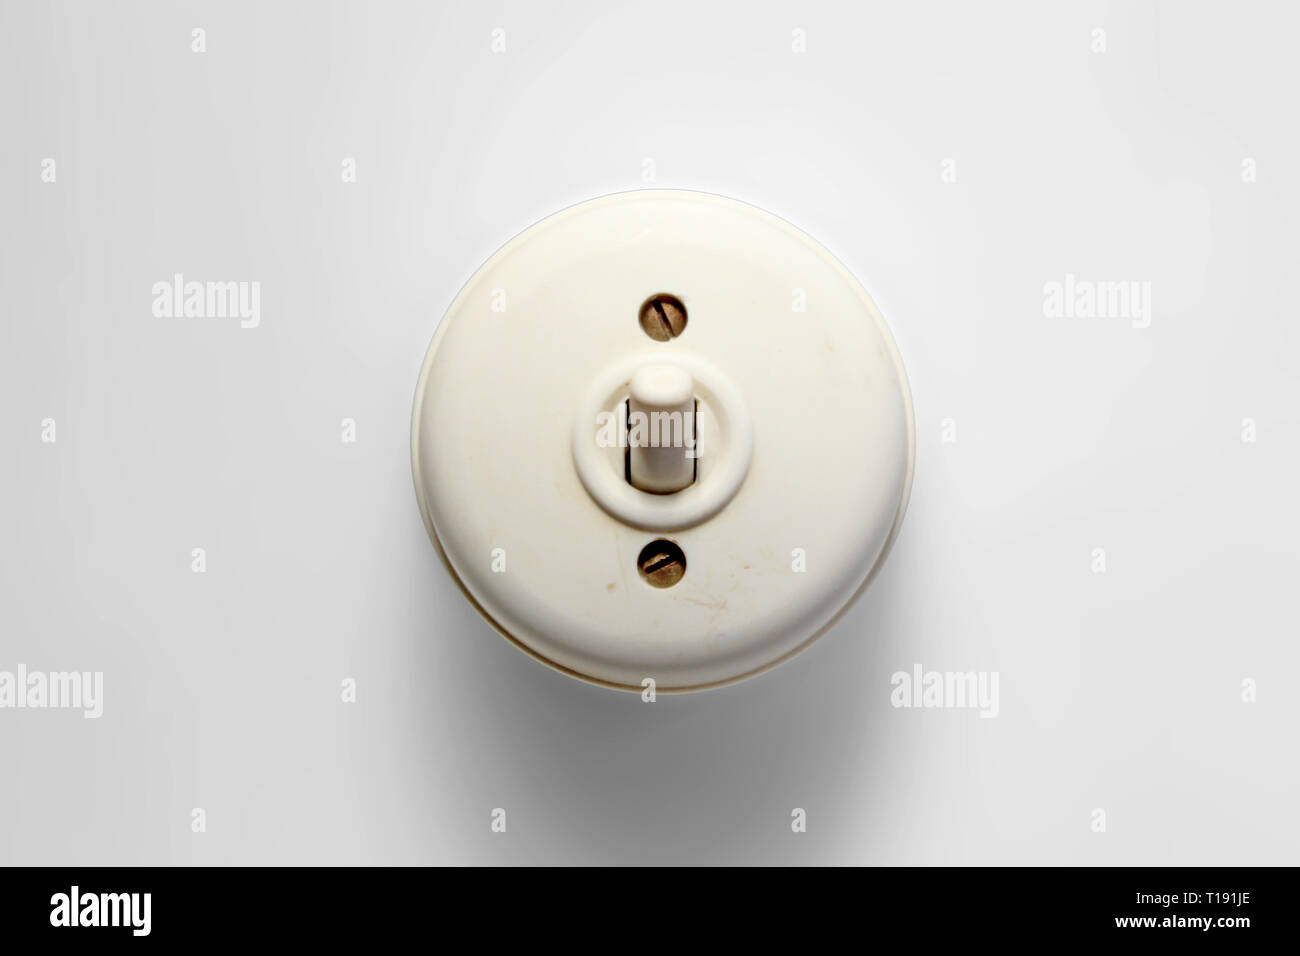 Antique switch on off, white bakelite 50s/60s, isolated on white background, closeup - Stock Image